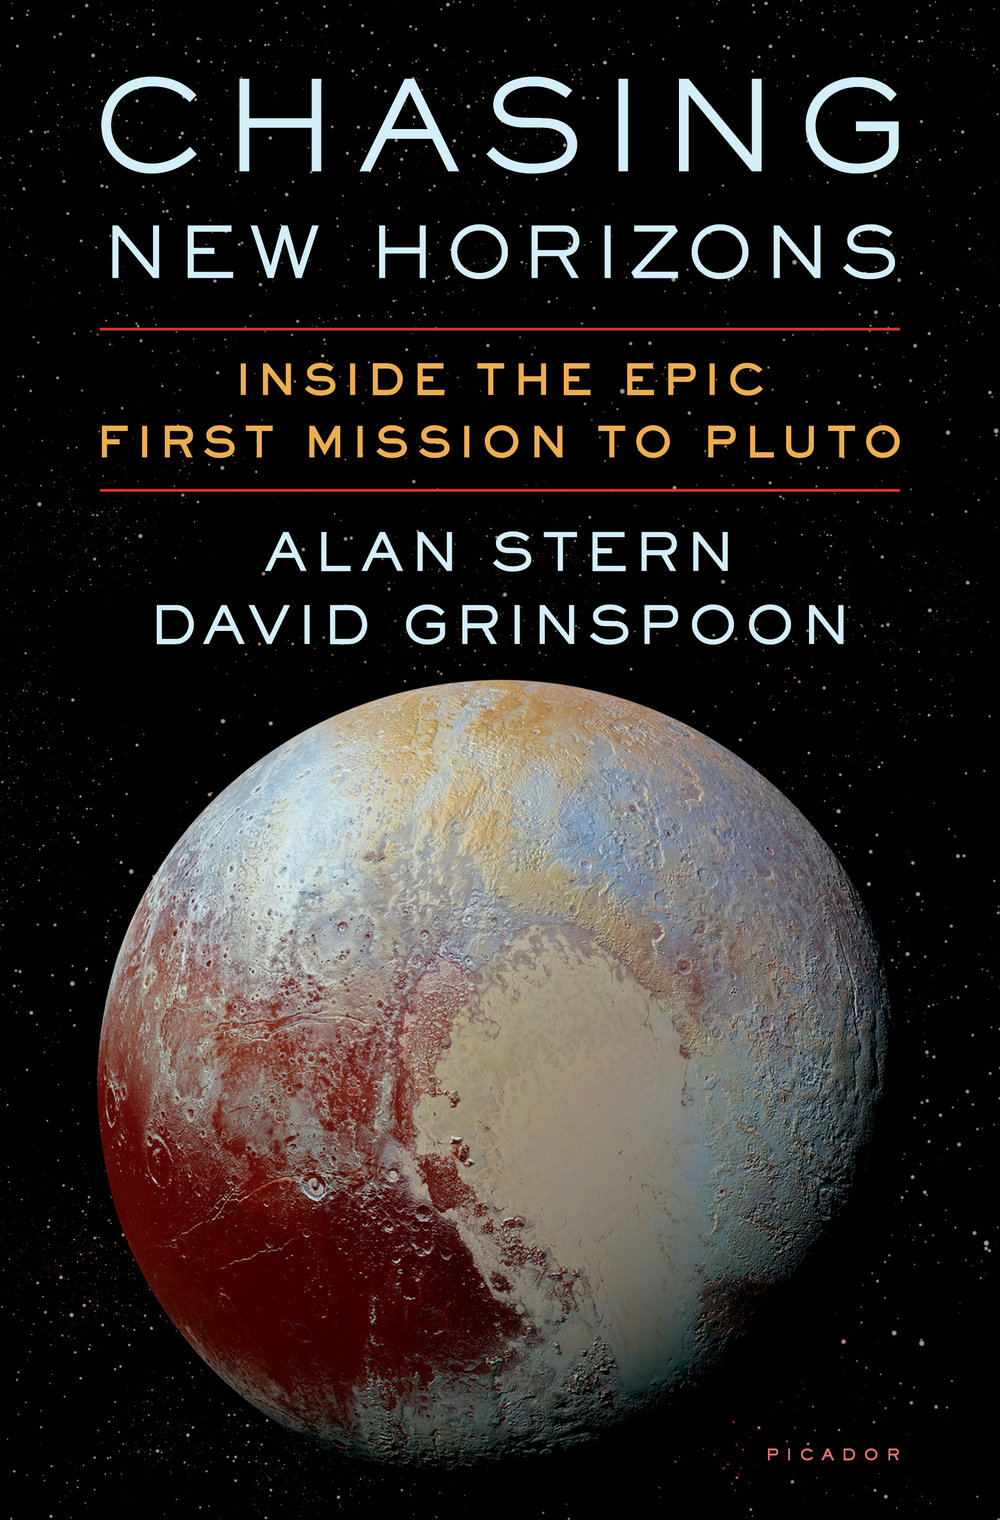 ChasingNewHorizons_FINAL cover.jpg